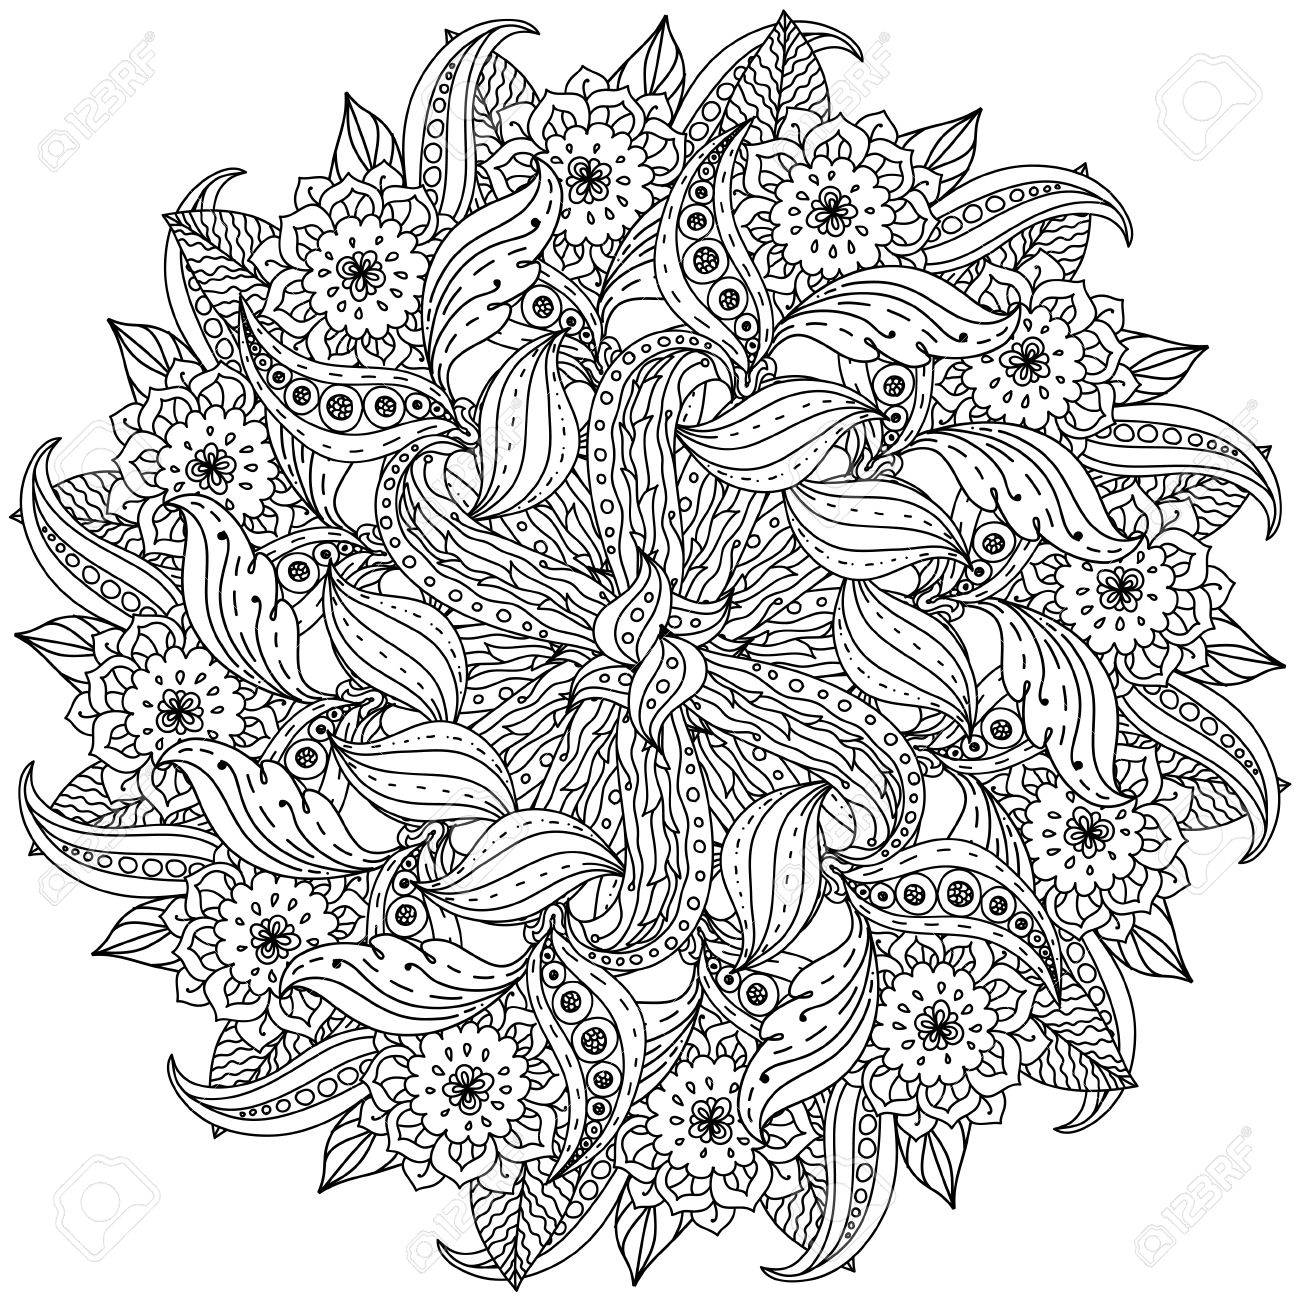 Zen colouring in book - Vector Contoured Mandala Shape Flowers For Adult Coloring Book In Zen Art Therapy Style For Anti Stress Drawing Hand Drawn Retro Doodle Vector